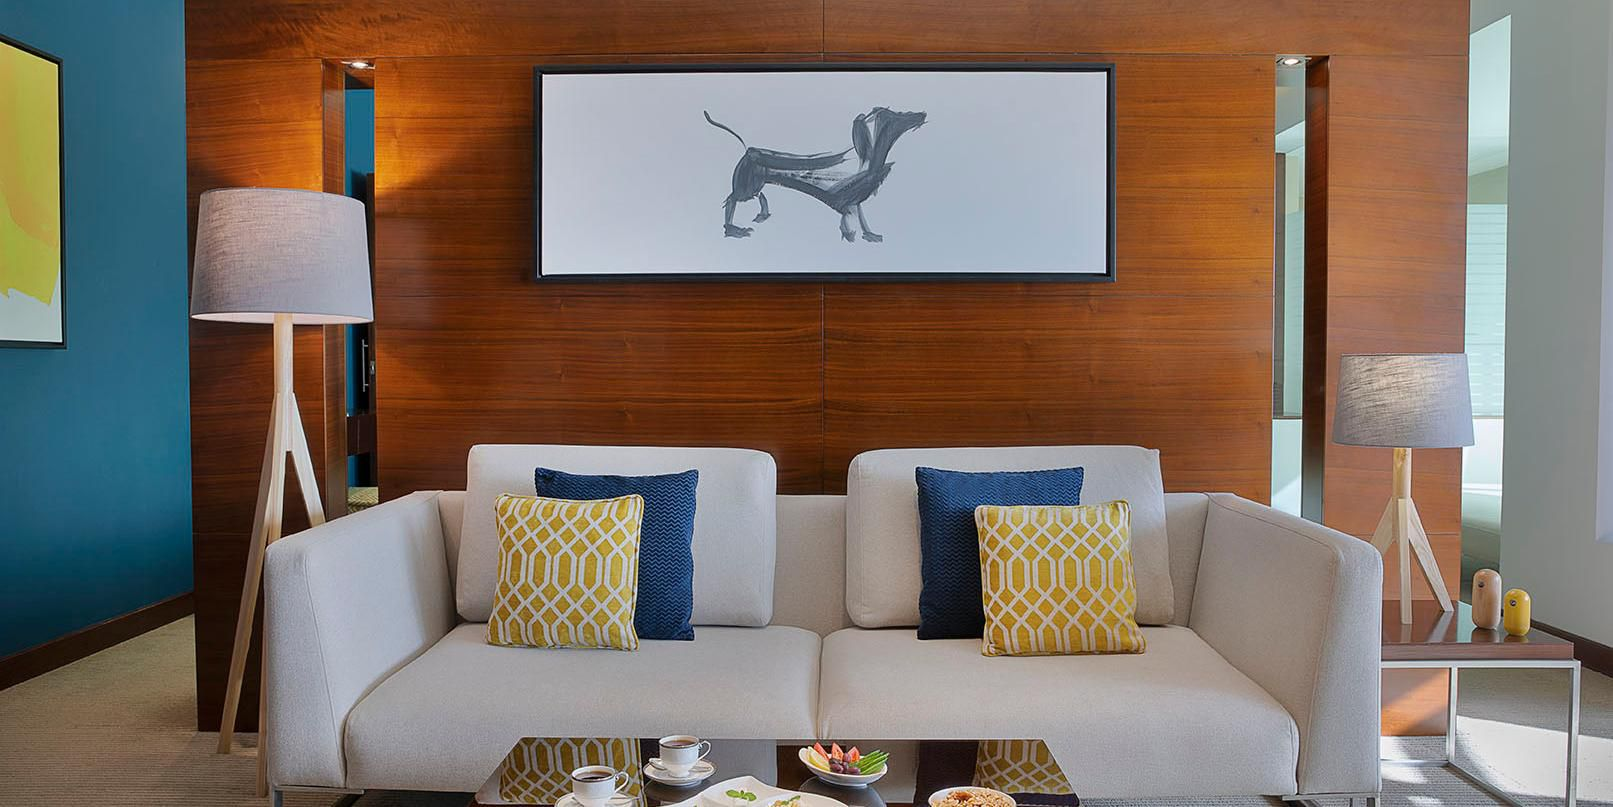 Premiere Suite living room, with views of Sheikh Zayed Road, Dubai